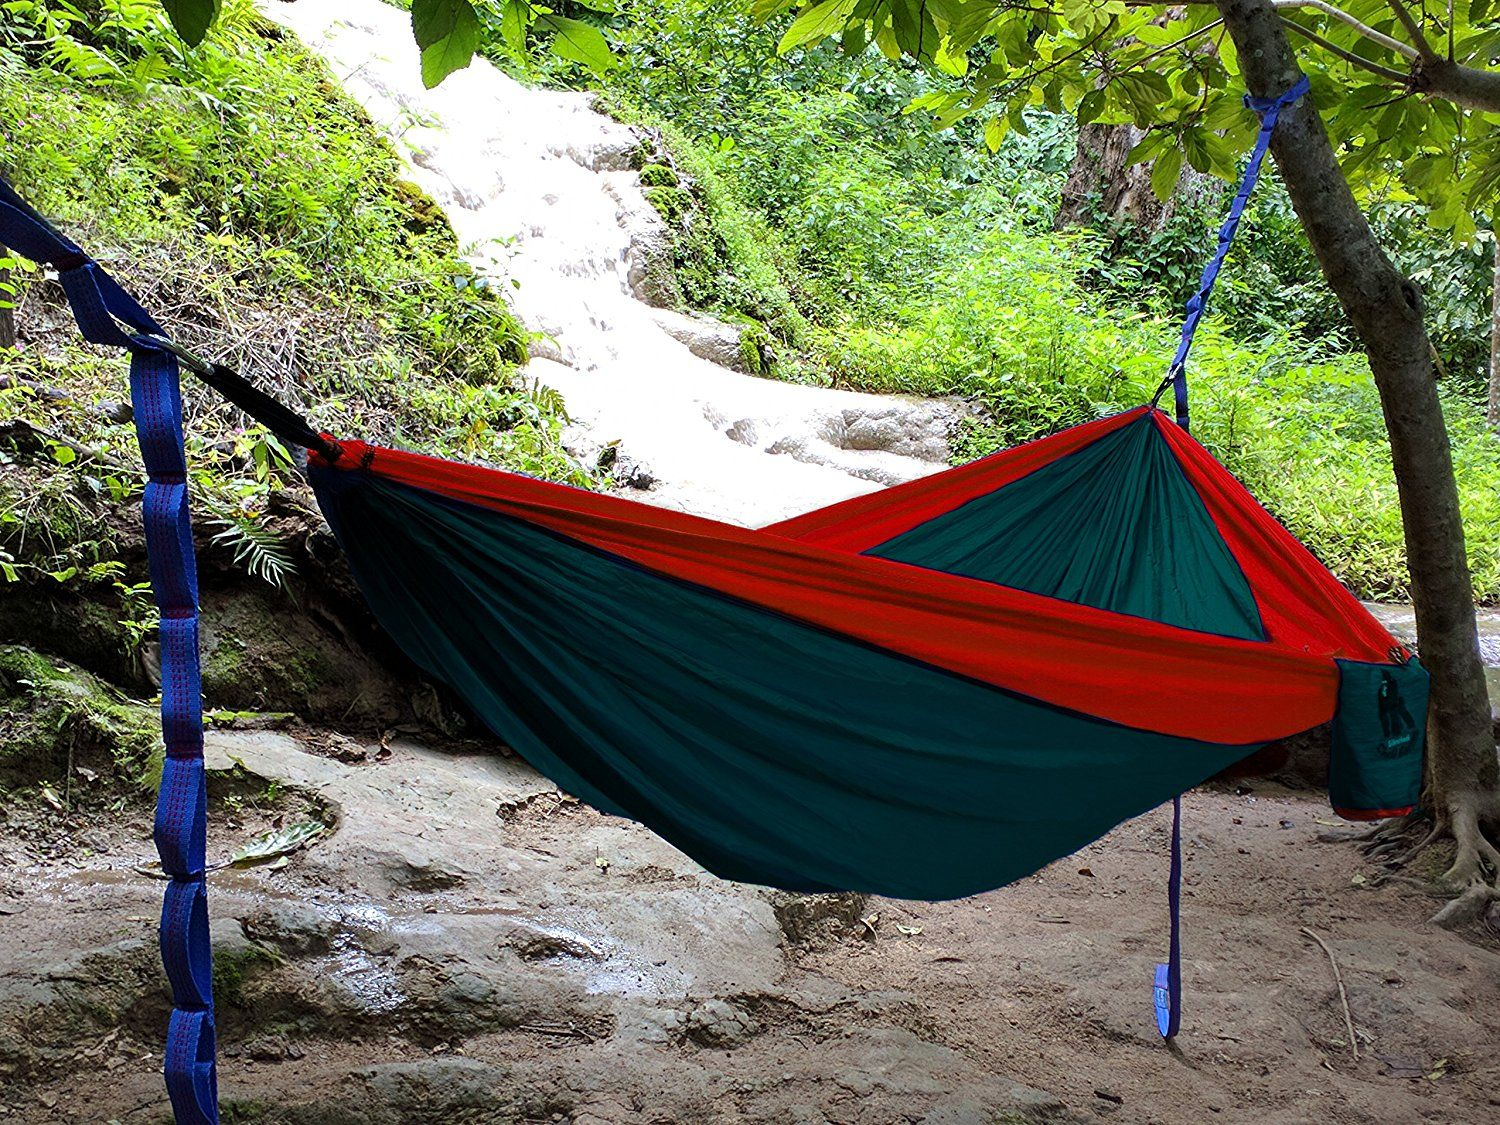 amazon    chill gorilla pro luxury double camping hammock with tree straps  green amazon    chill gorilla pro luxury double camping hammock with      rh   pinterest